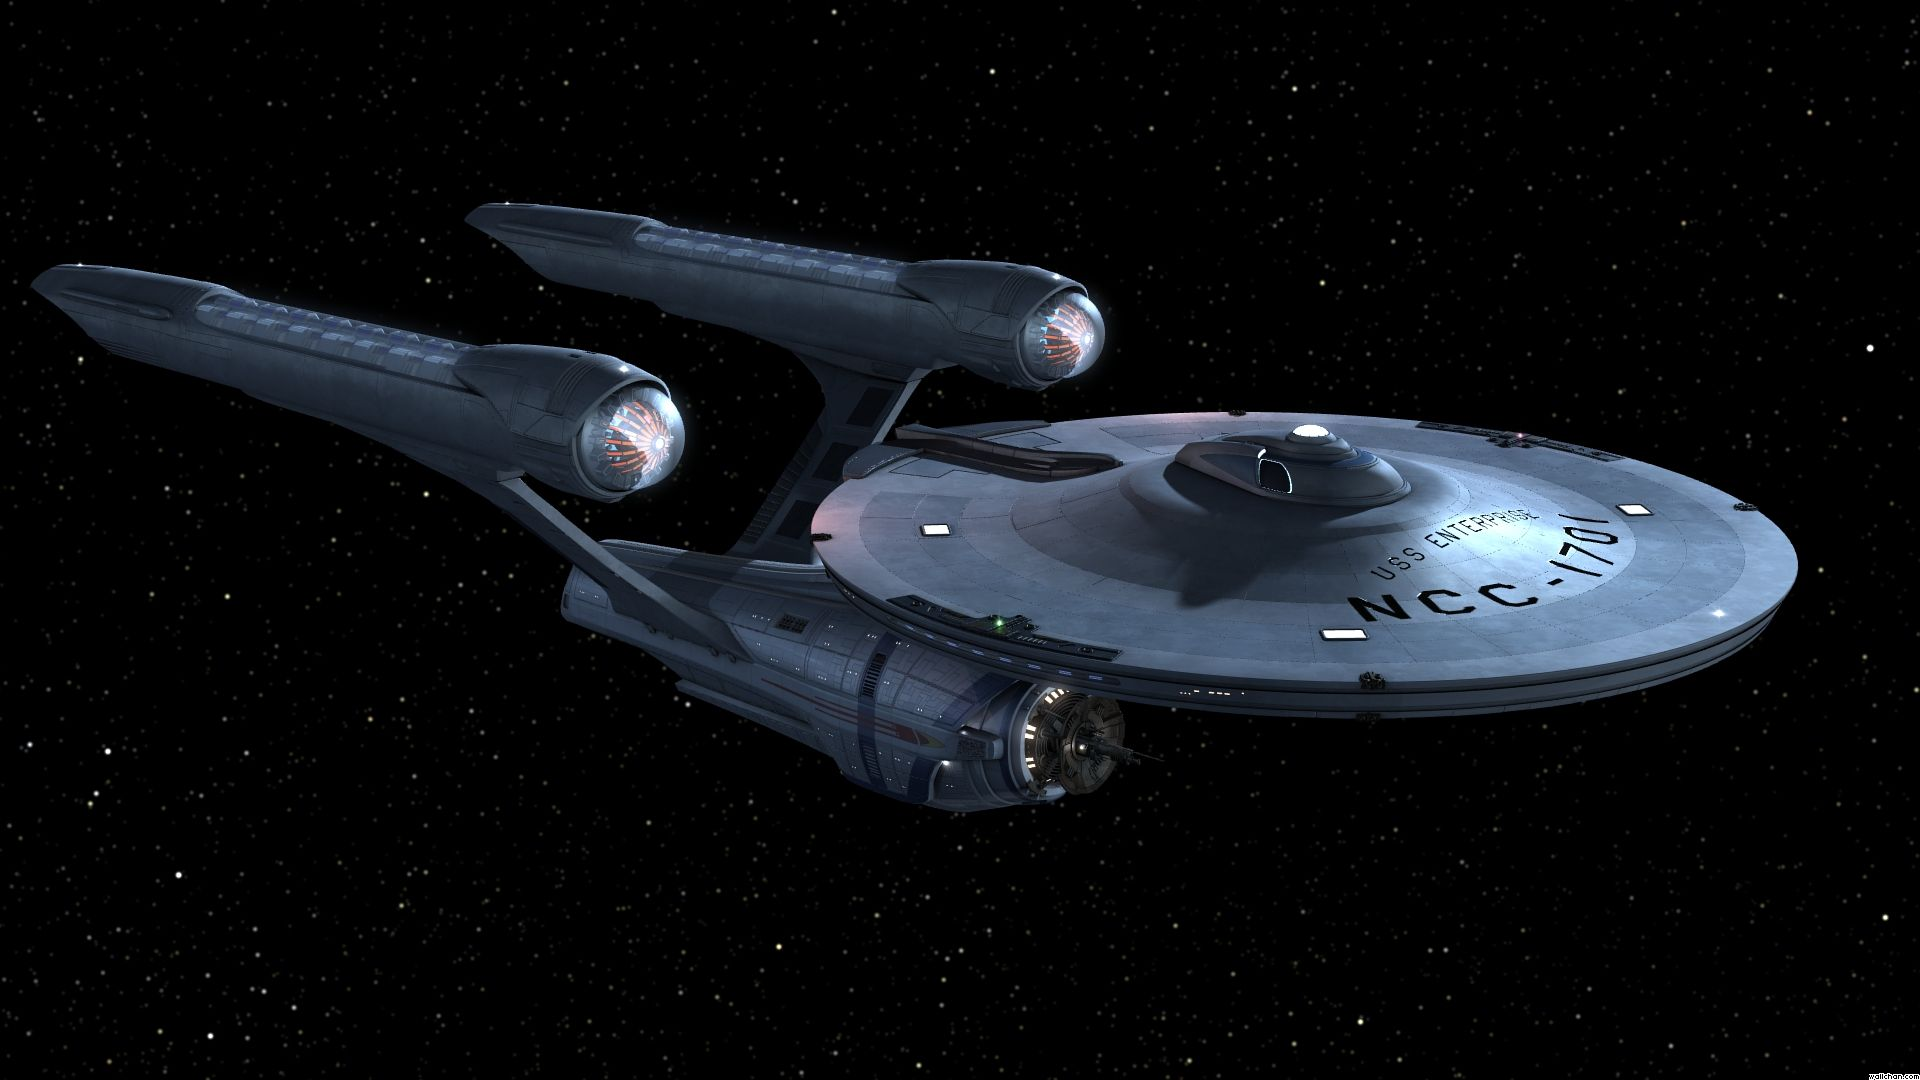 31151 uss enterprise star trek television show shows[1] Deano In 1920x1080